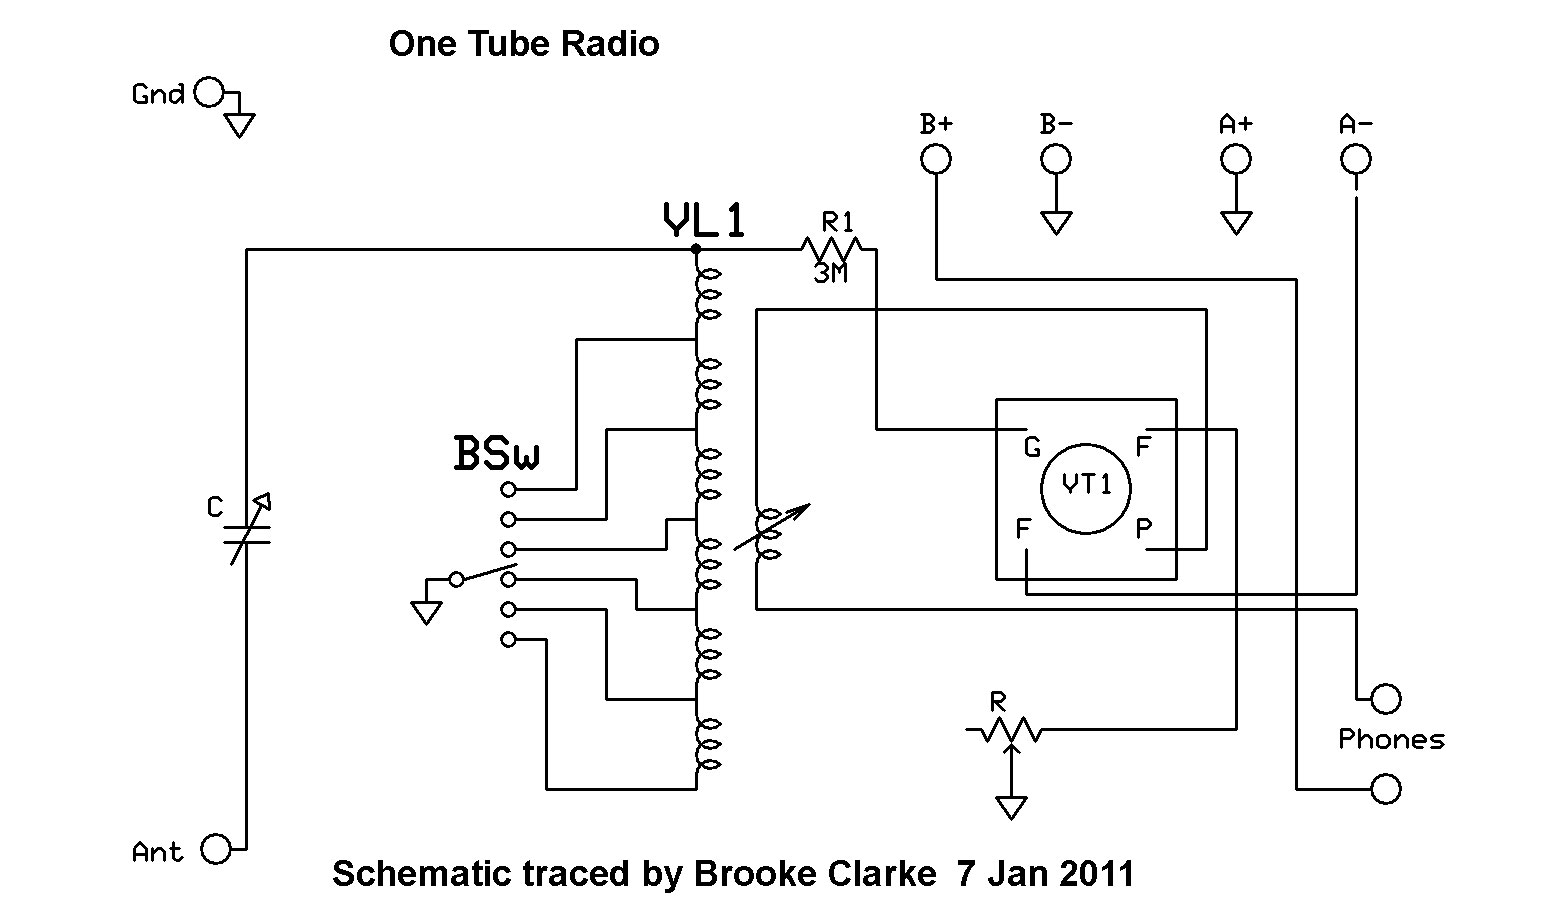 Men of reddit what places would you never besides O ubeRadio additionally 251pg9 besides G 6lbi01conp9ko0u5qq7mqa0 in addition Antiqueele one tube regenerative radio kit a 201. on armstrong 1 tube radio schematics